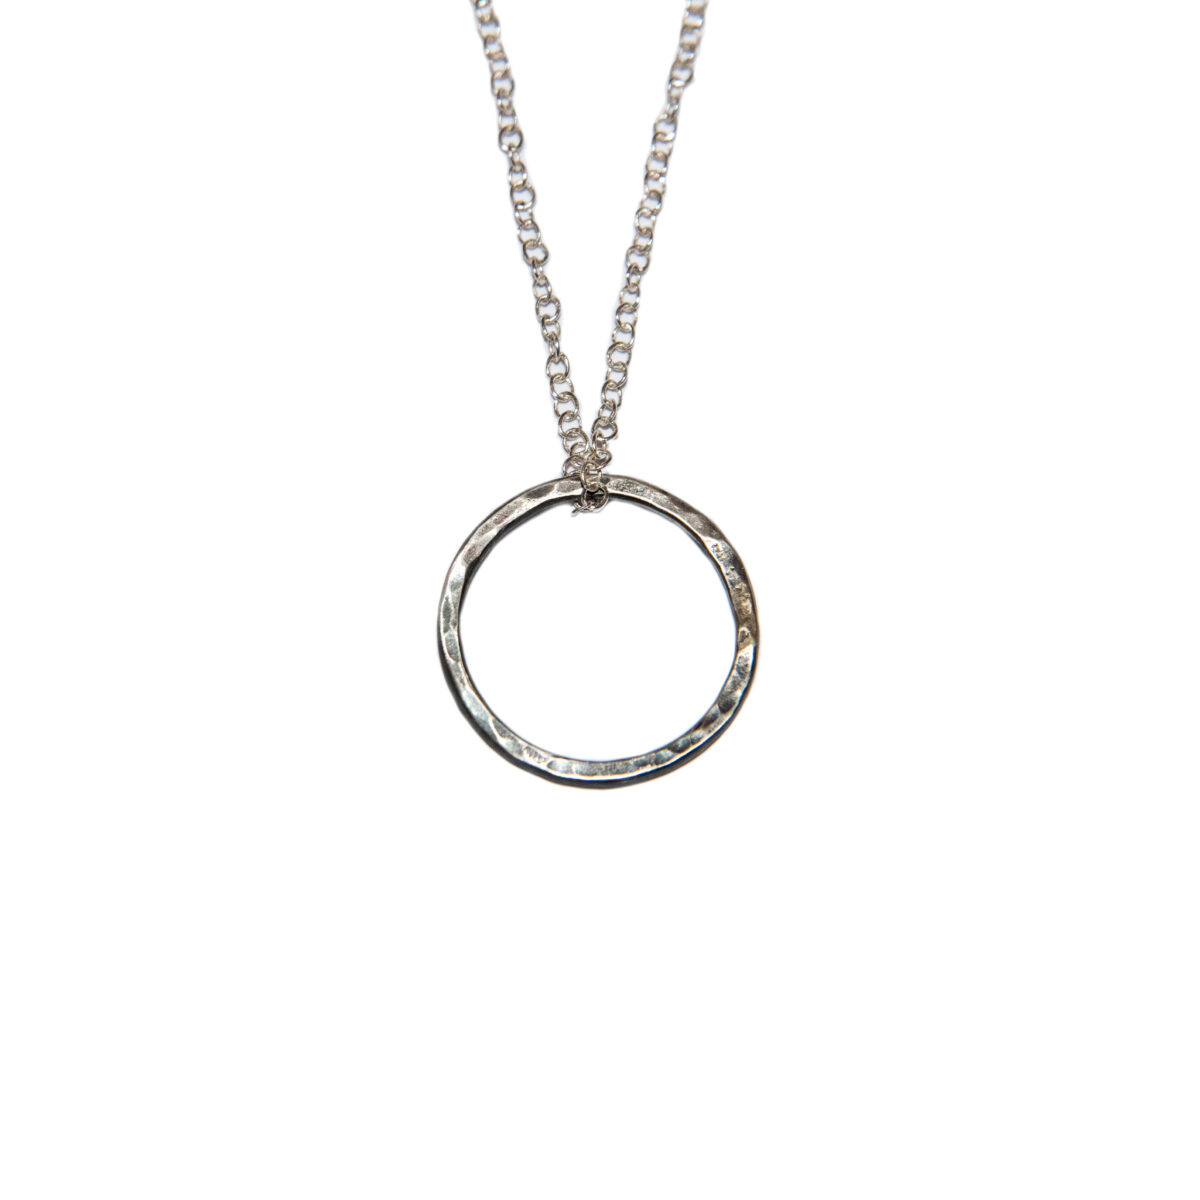 Ring necklace II Silver